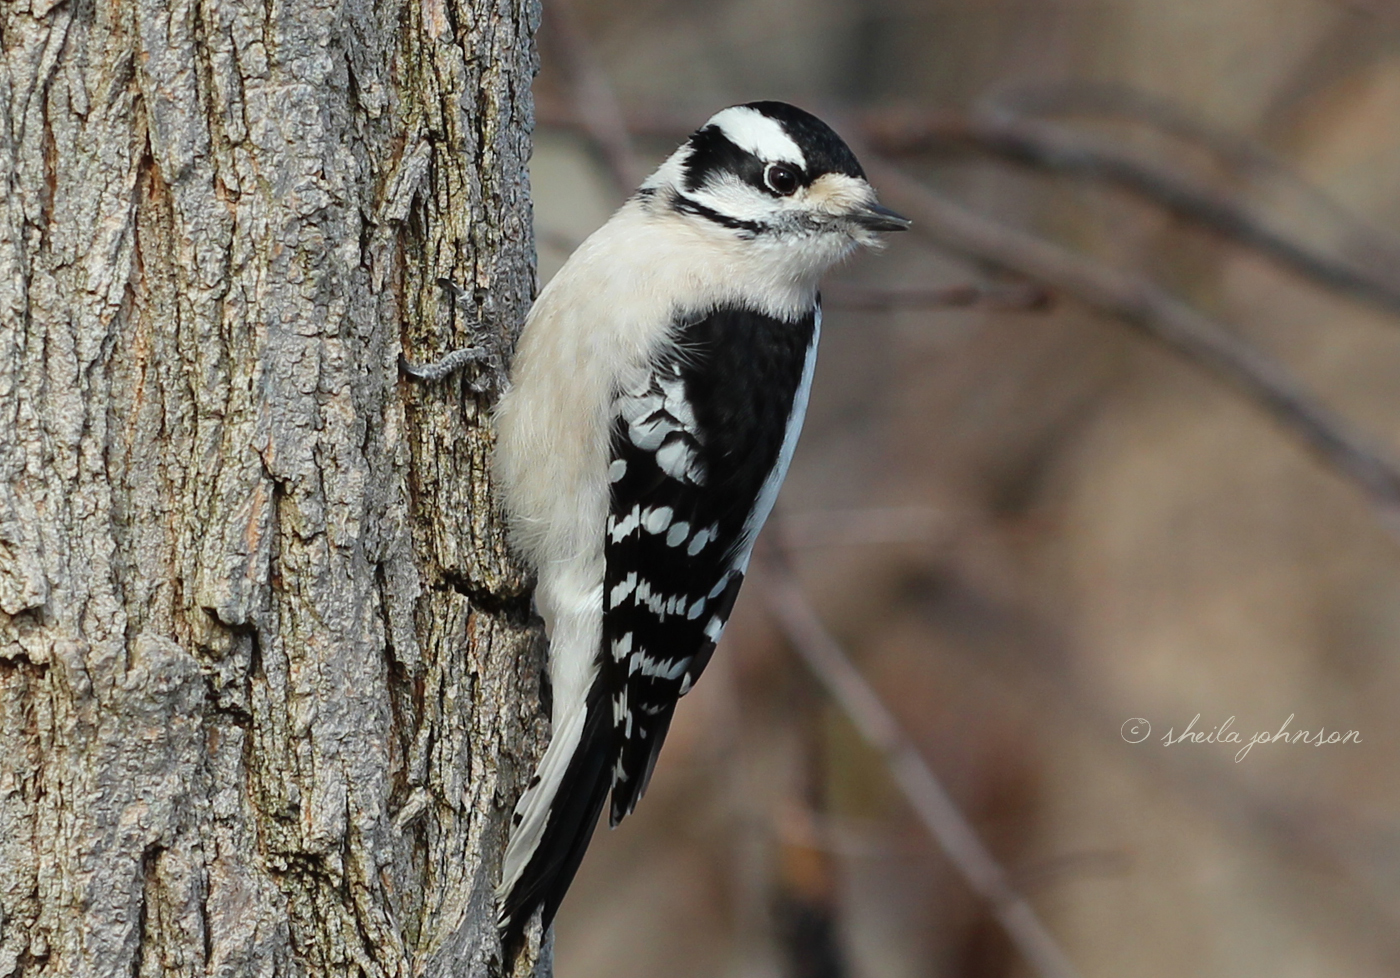 This Female Downy Woodpecker Seems To Be Following Me. I'm Happy To Let Her. The Downy Woodpecker Is The Smallest Woodpecker In North America.